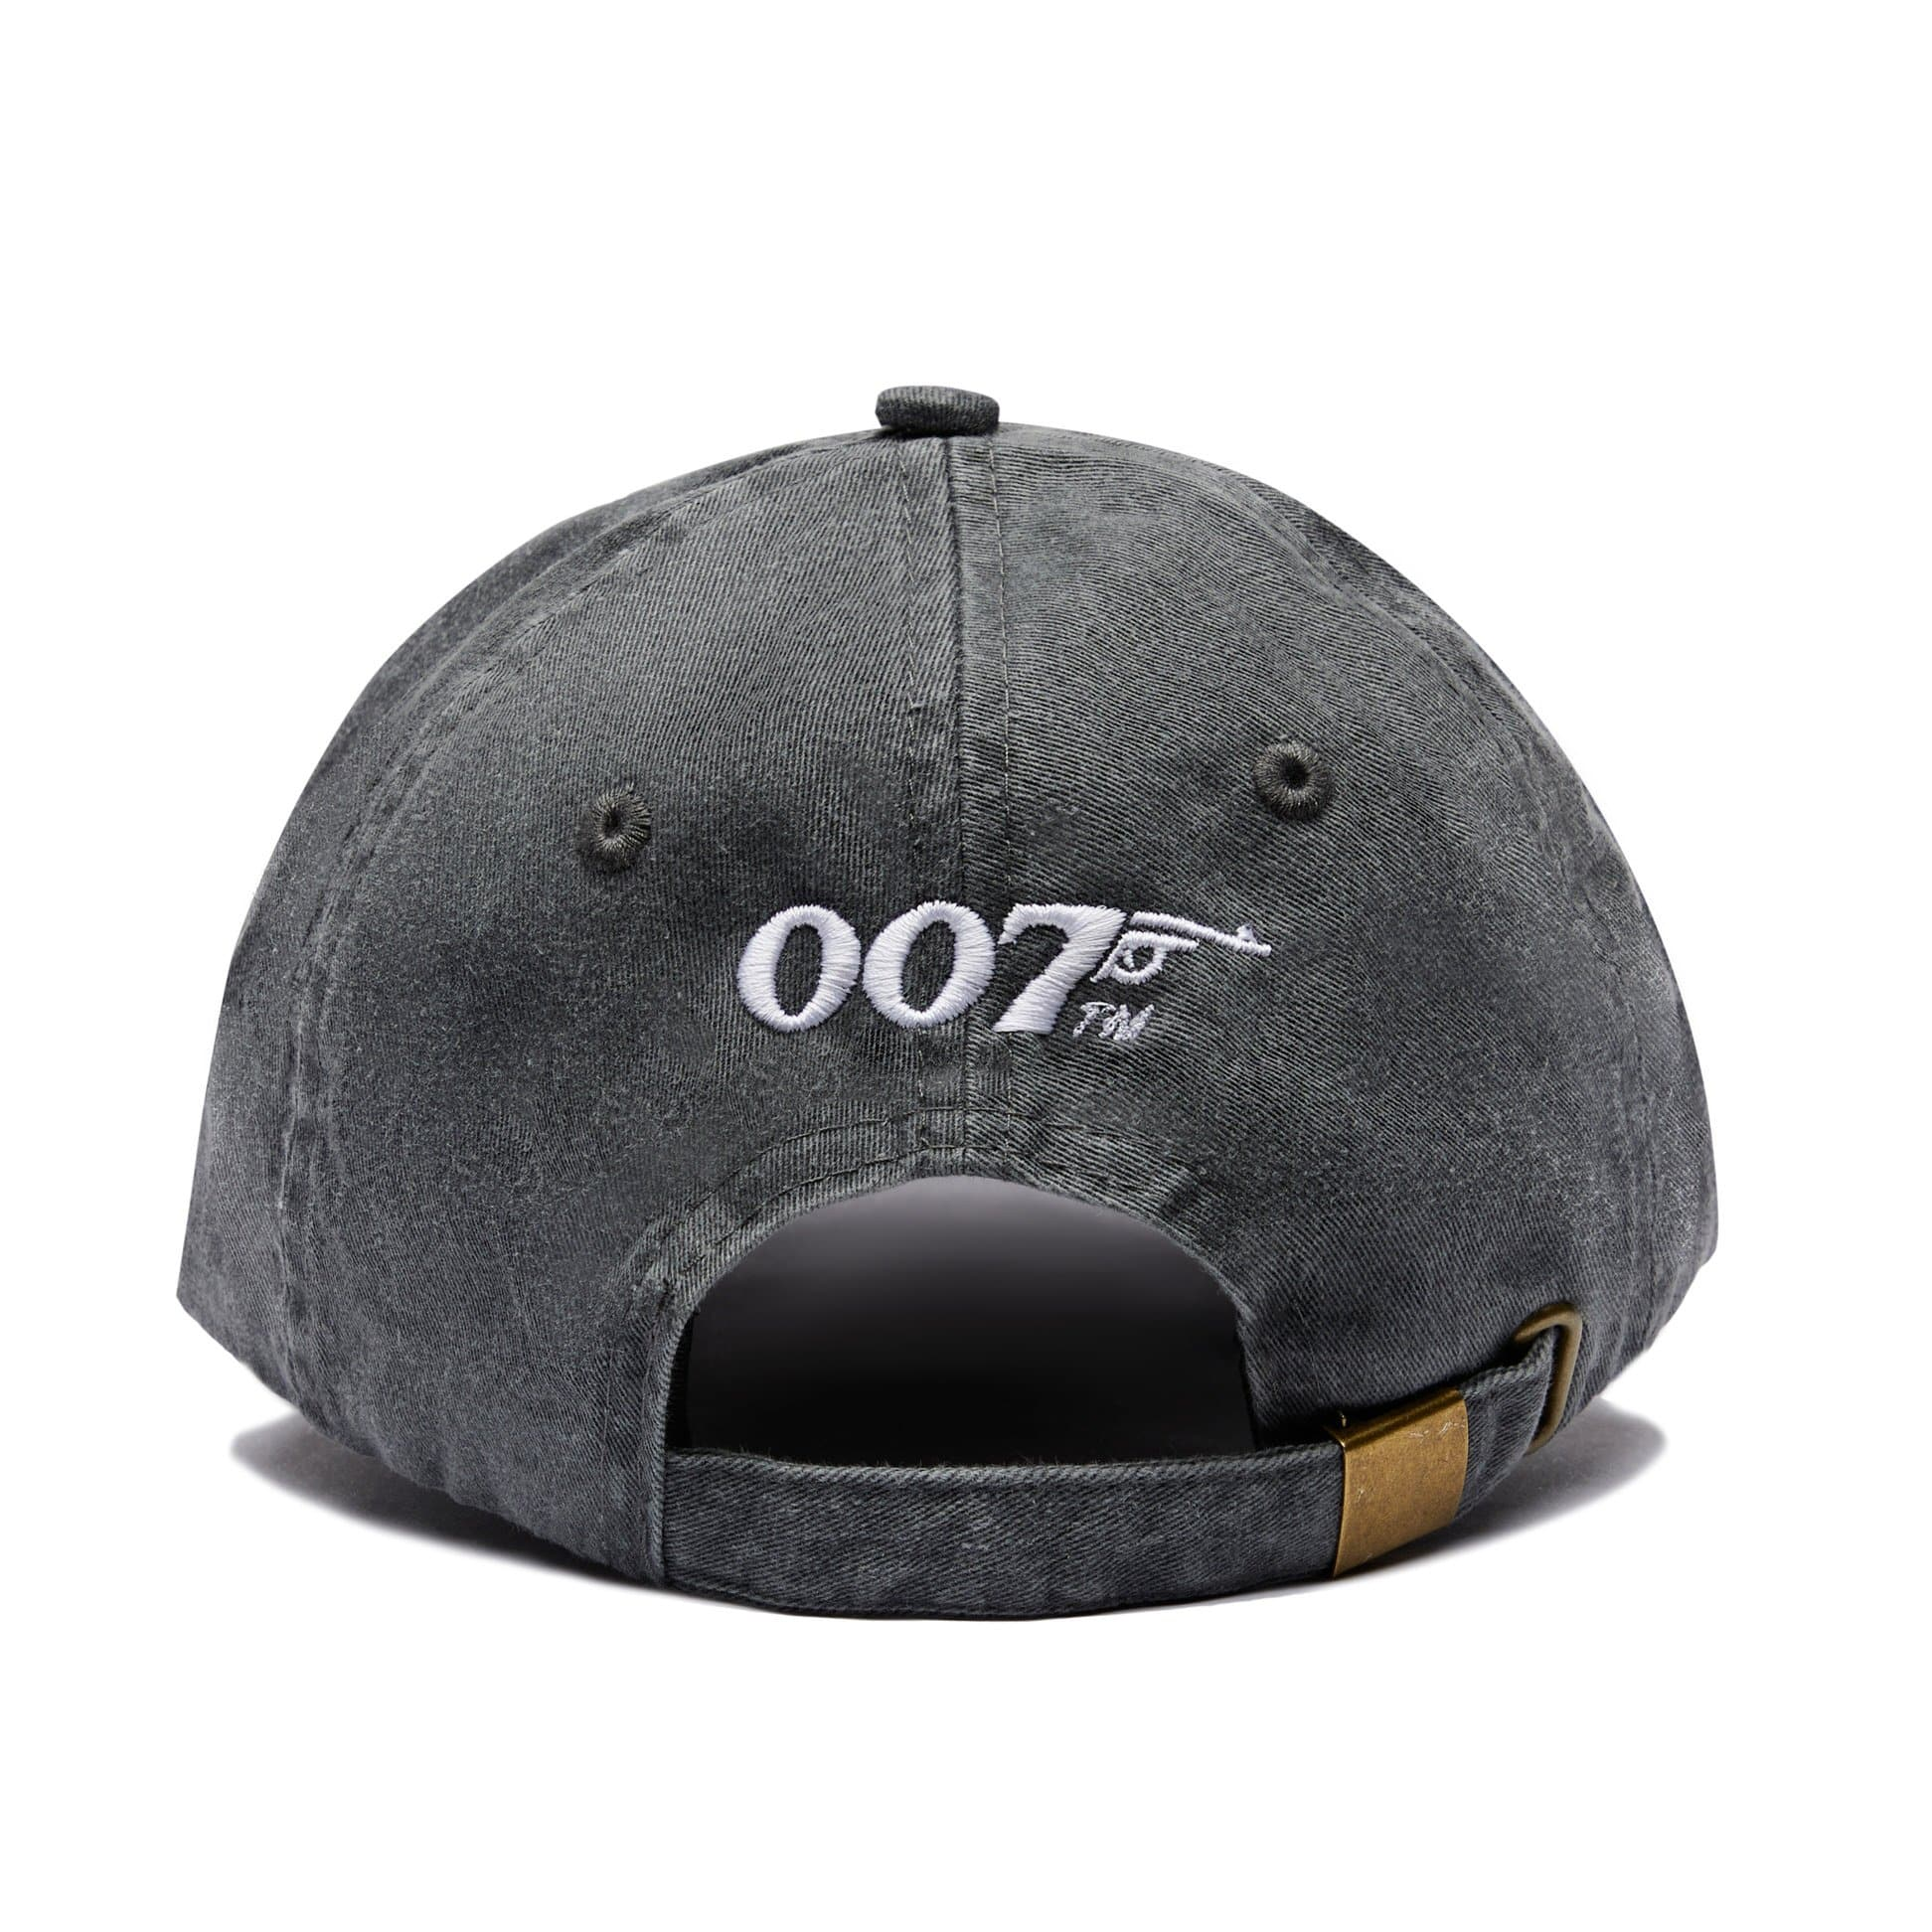 Retro 007 Logo Embroidered Baseball Cap - Charcoal Grey